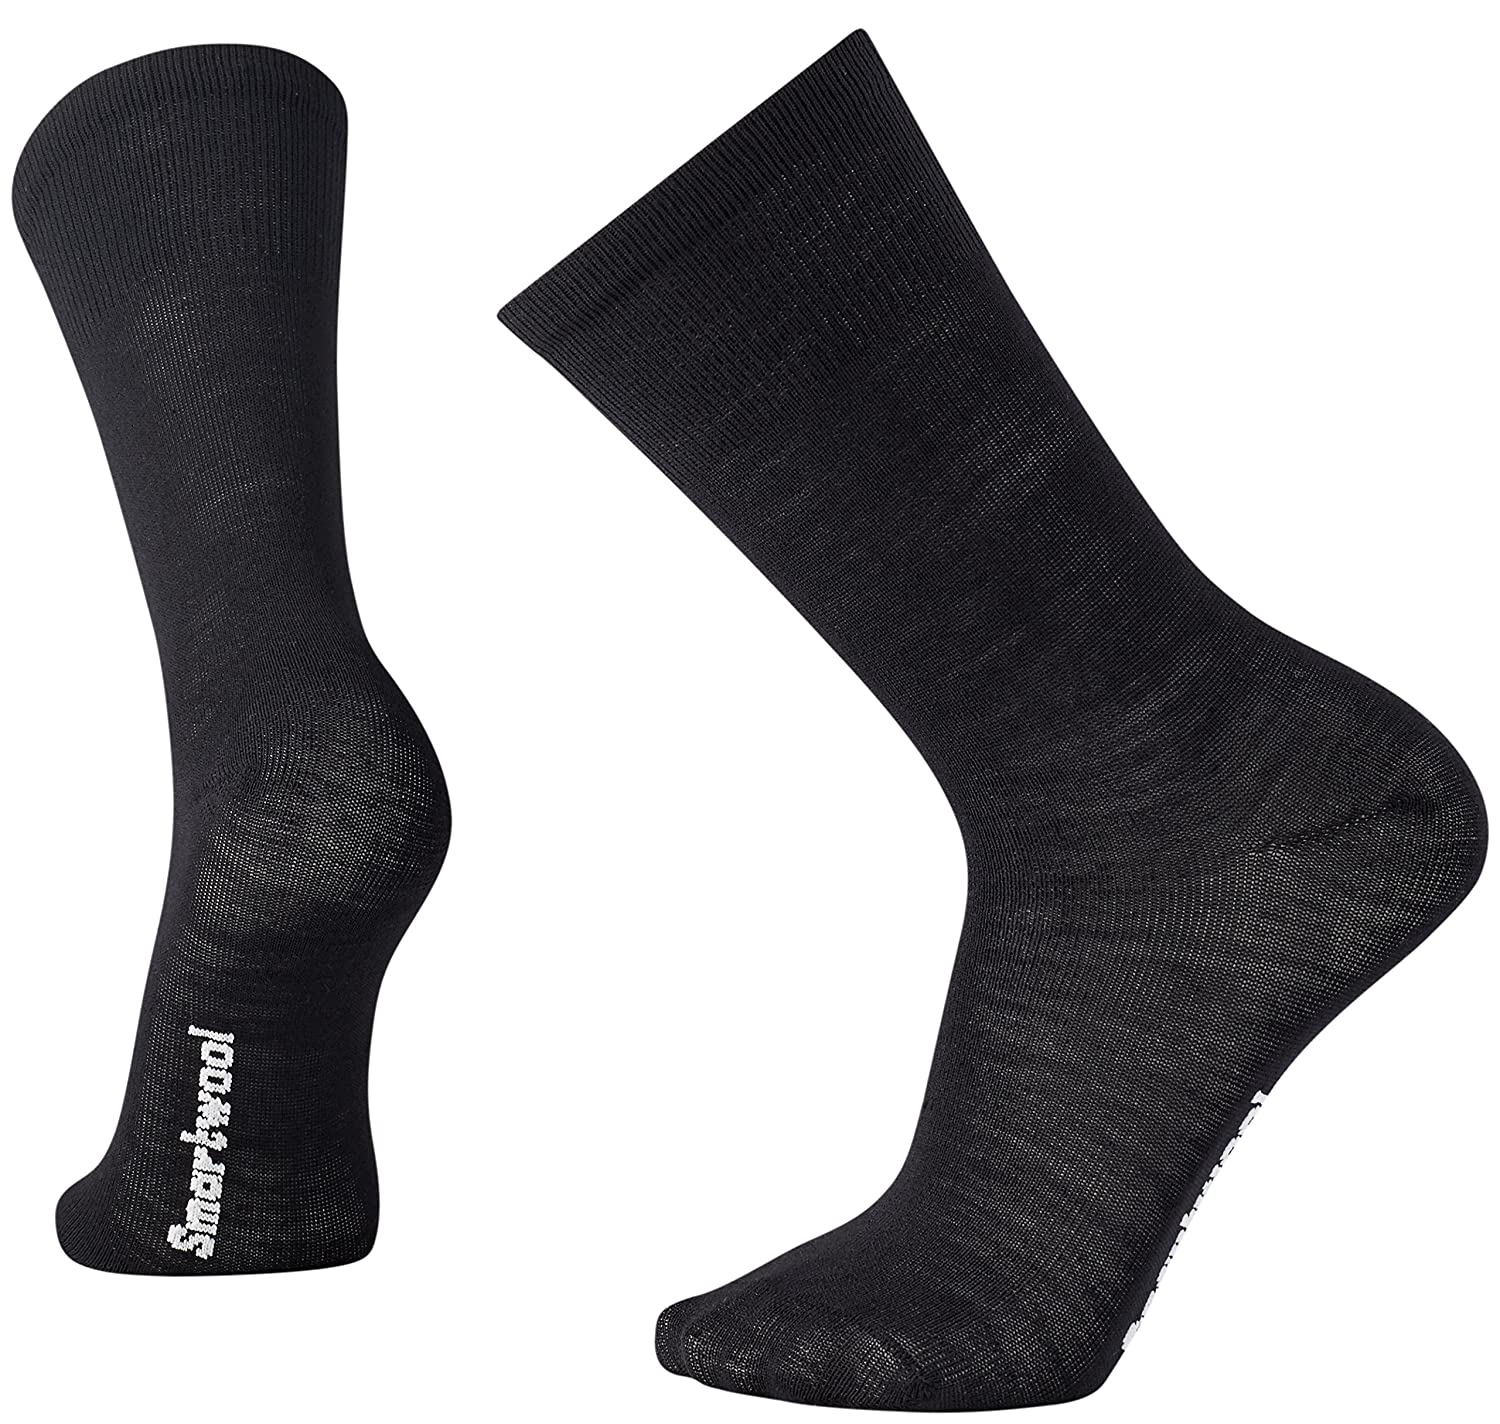 b8777738a4566 Amazon.com: SmartWool Hike Liner Crew Socks: Sports & Outdoors